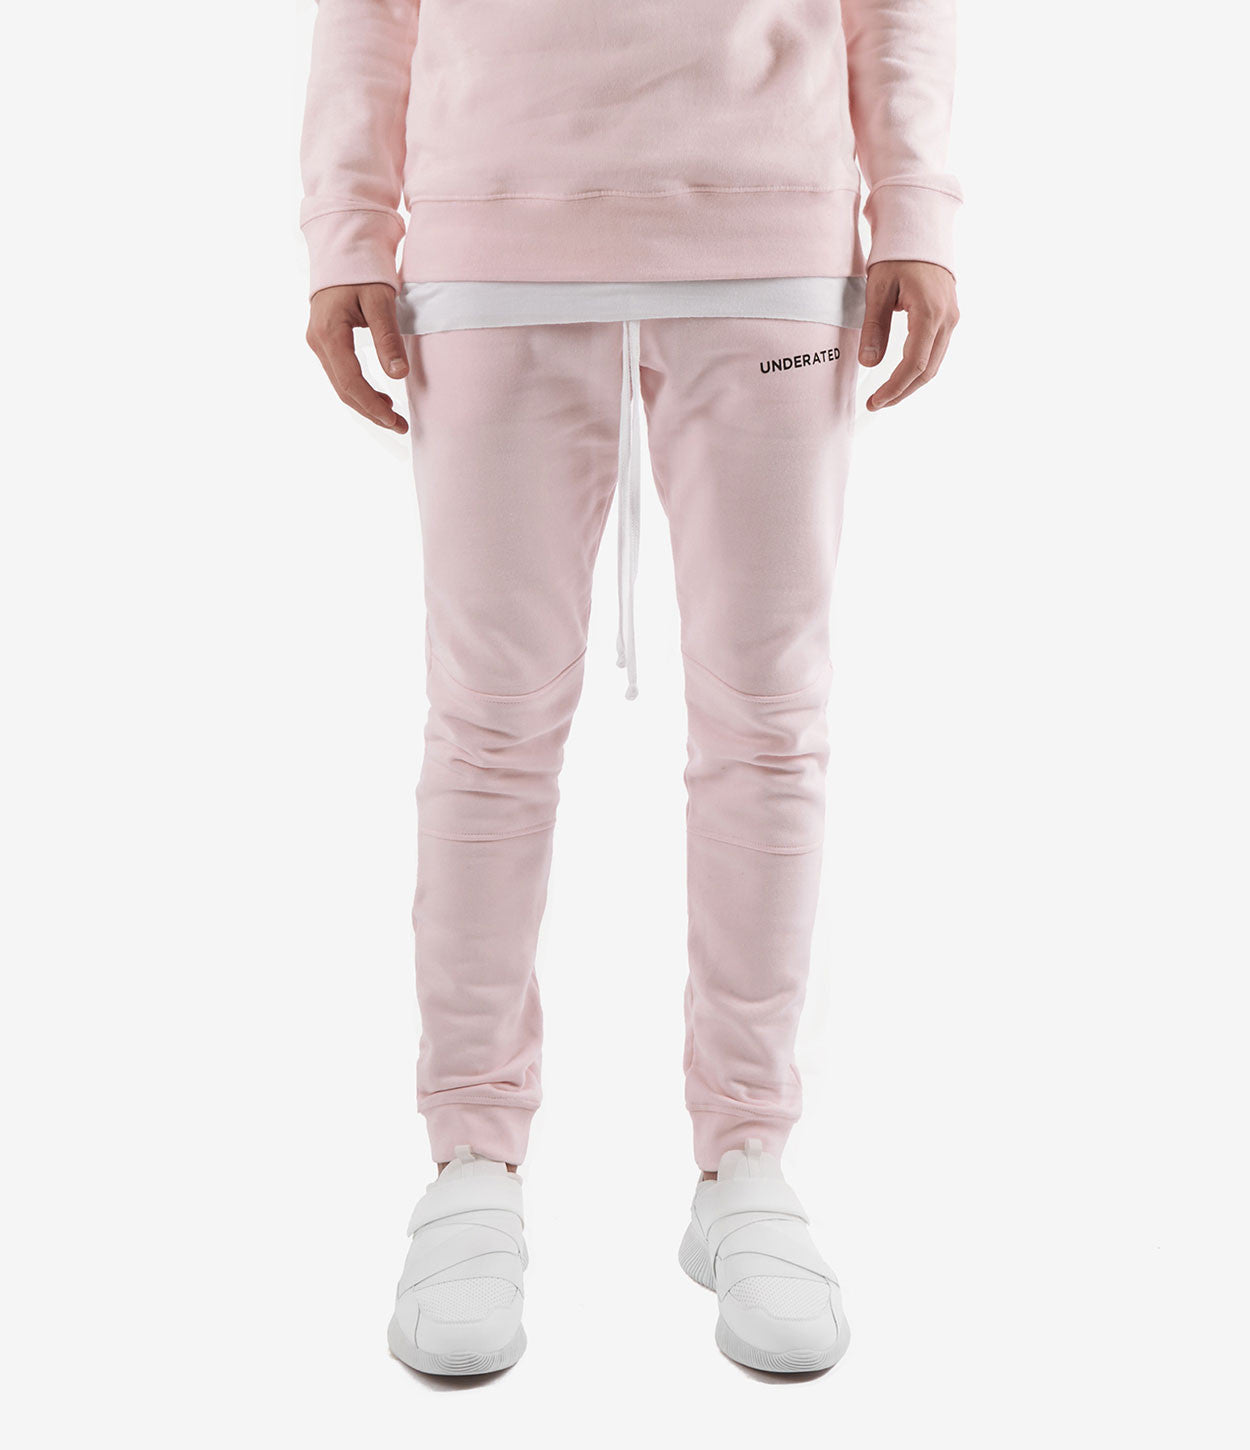 TR355 Essential Joggers - Pink - underated london - underatedco - 2